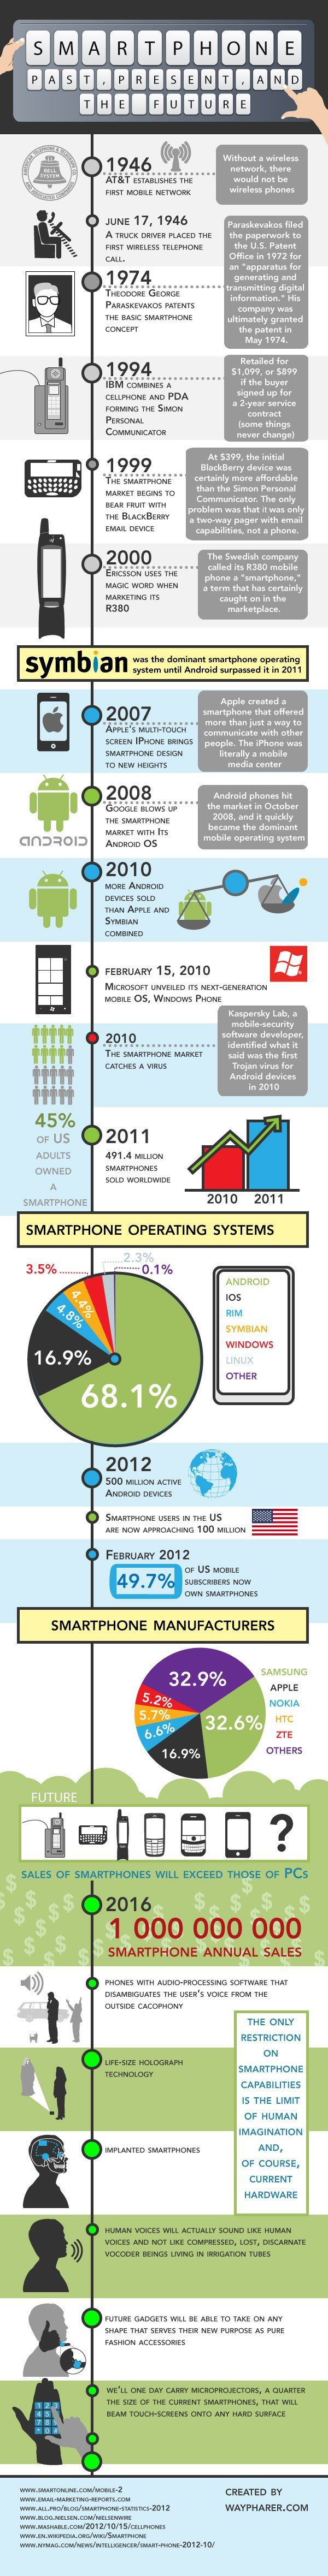 Smartphone overview - just think smartphone implants in everyones' future down the road. #mobile #smartphone